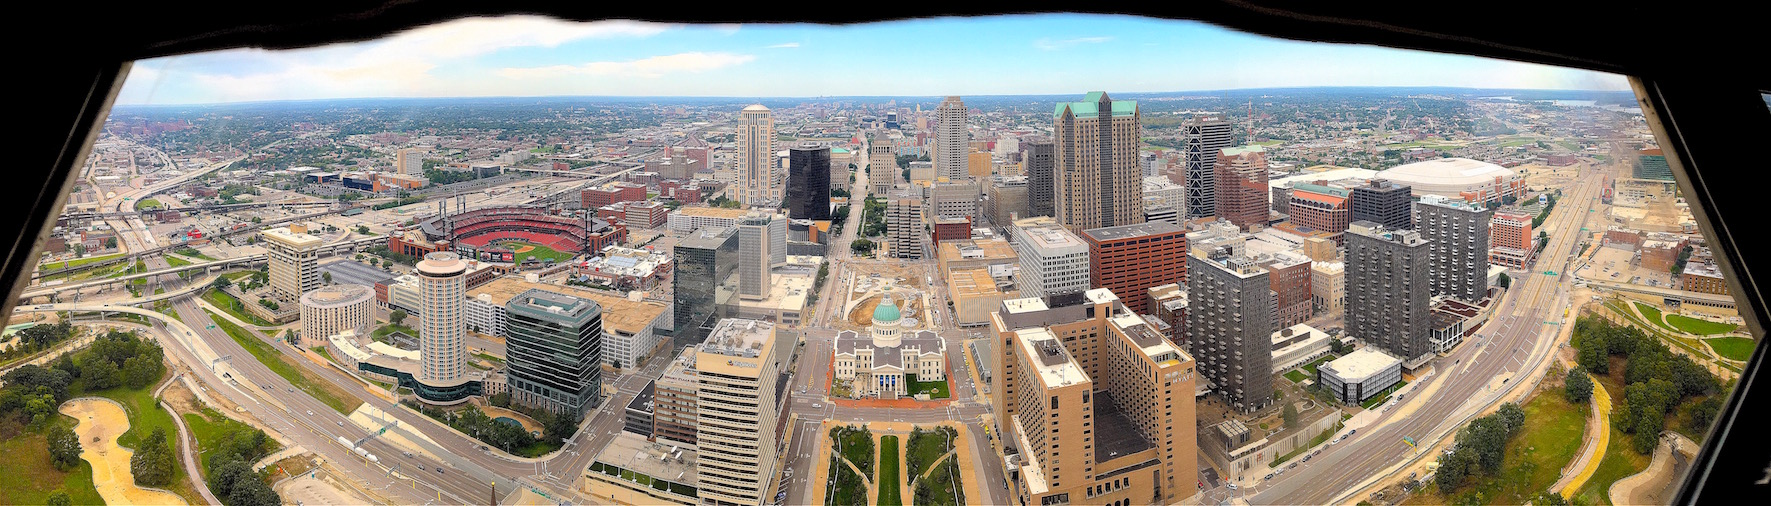 View west from top of St. Louis Arch